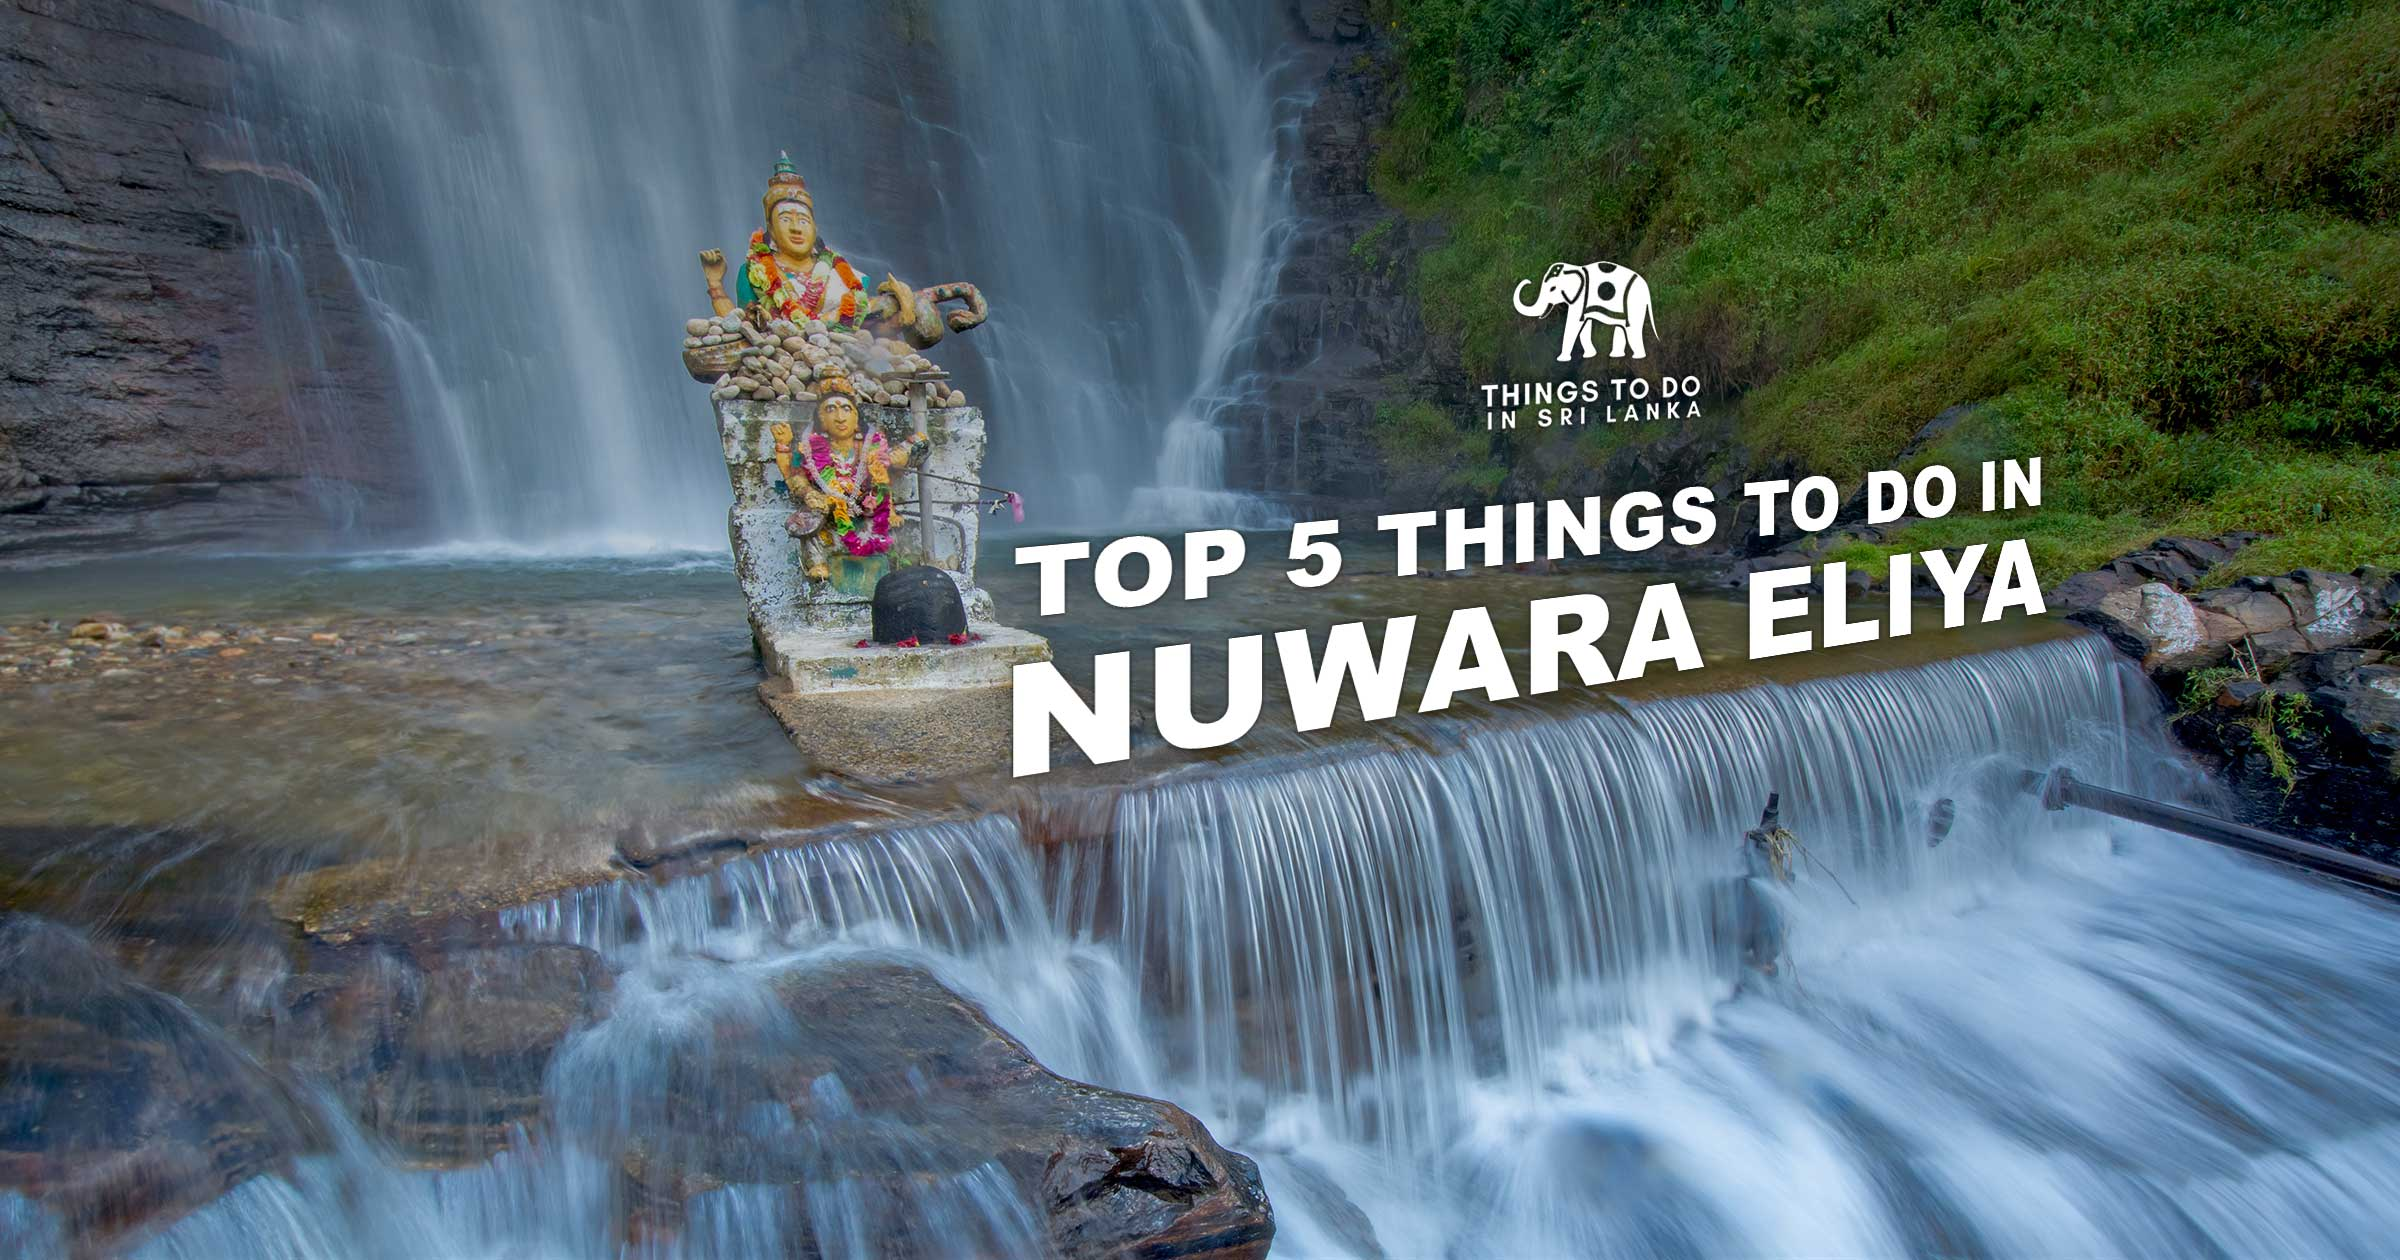 Top 5 things to do in Nuwara Eliya